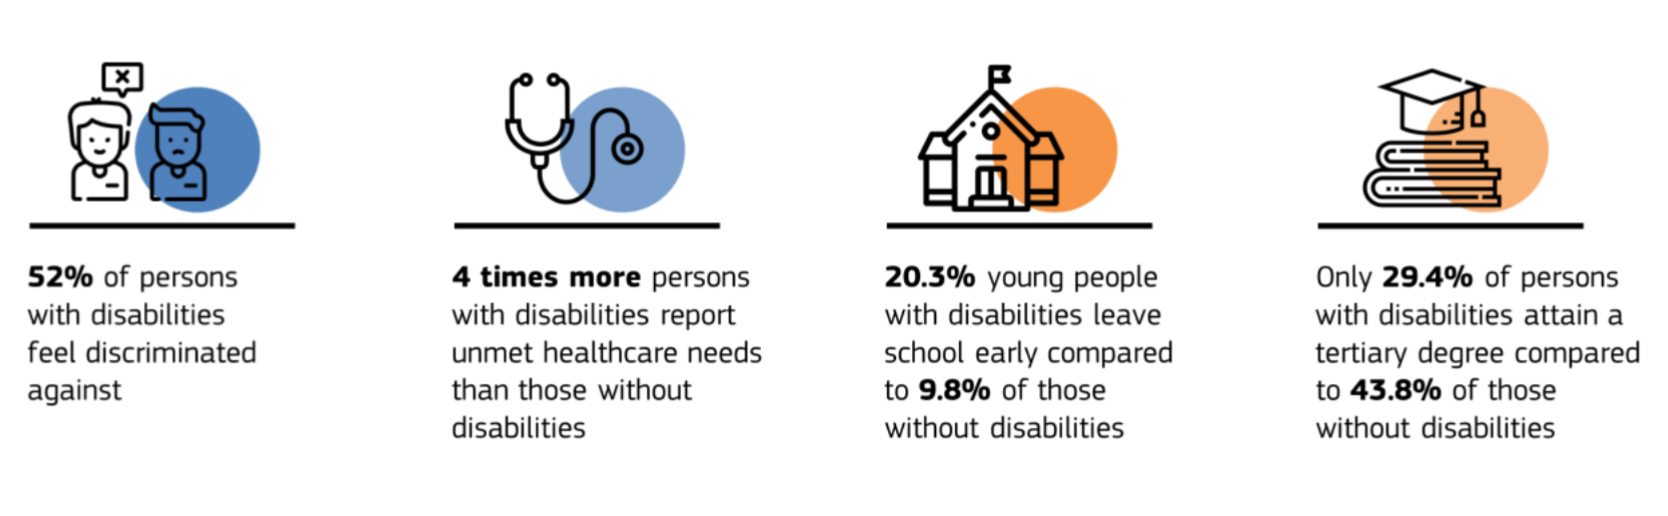 EC presents Union of Equality: Strategy for the Rights of Persons with  Disabilities 2021-2030   EPALE